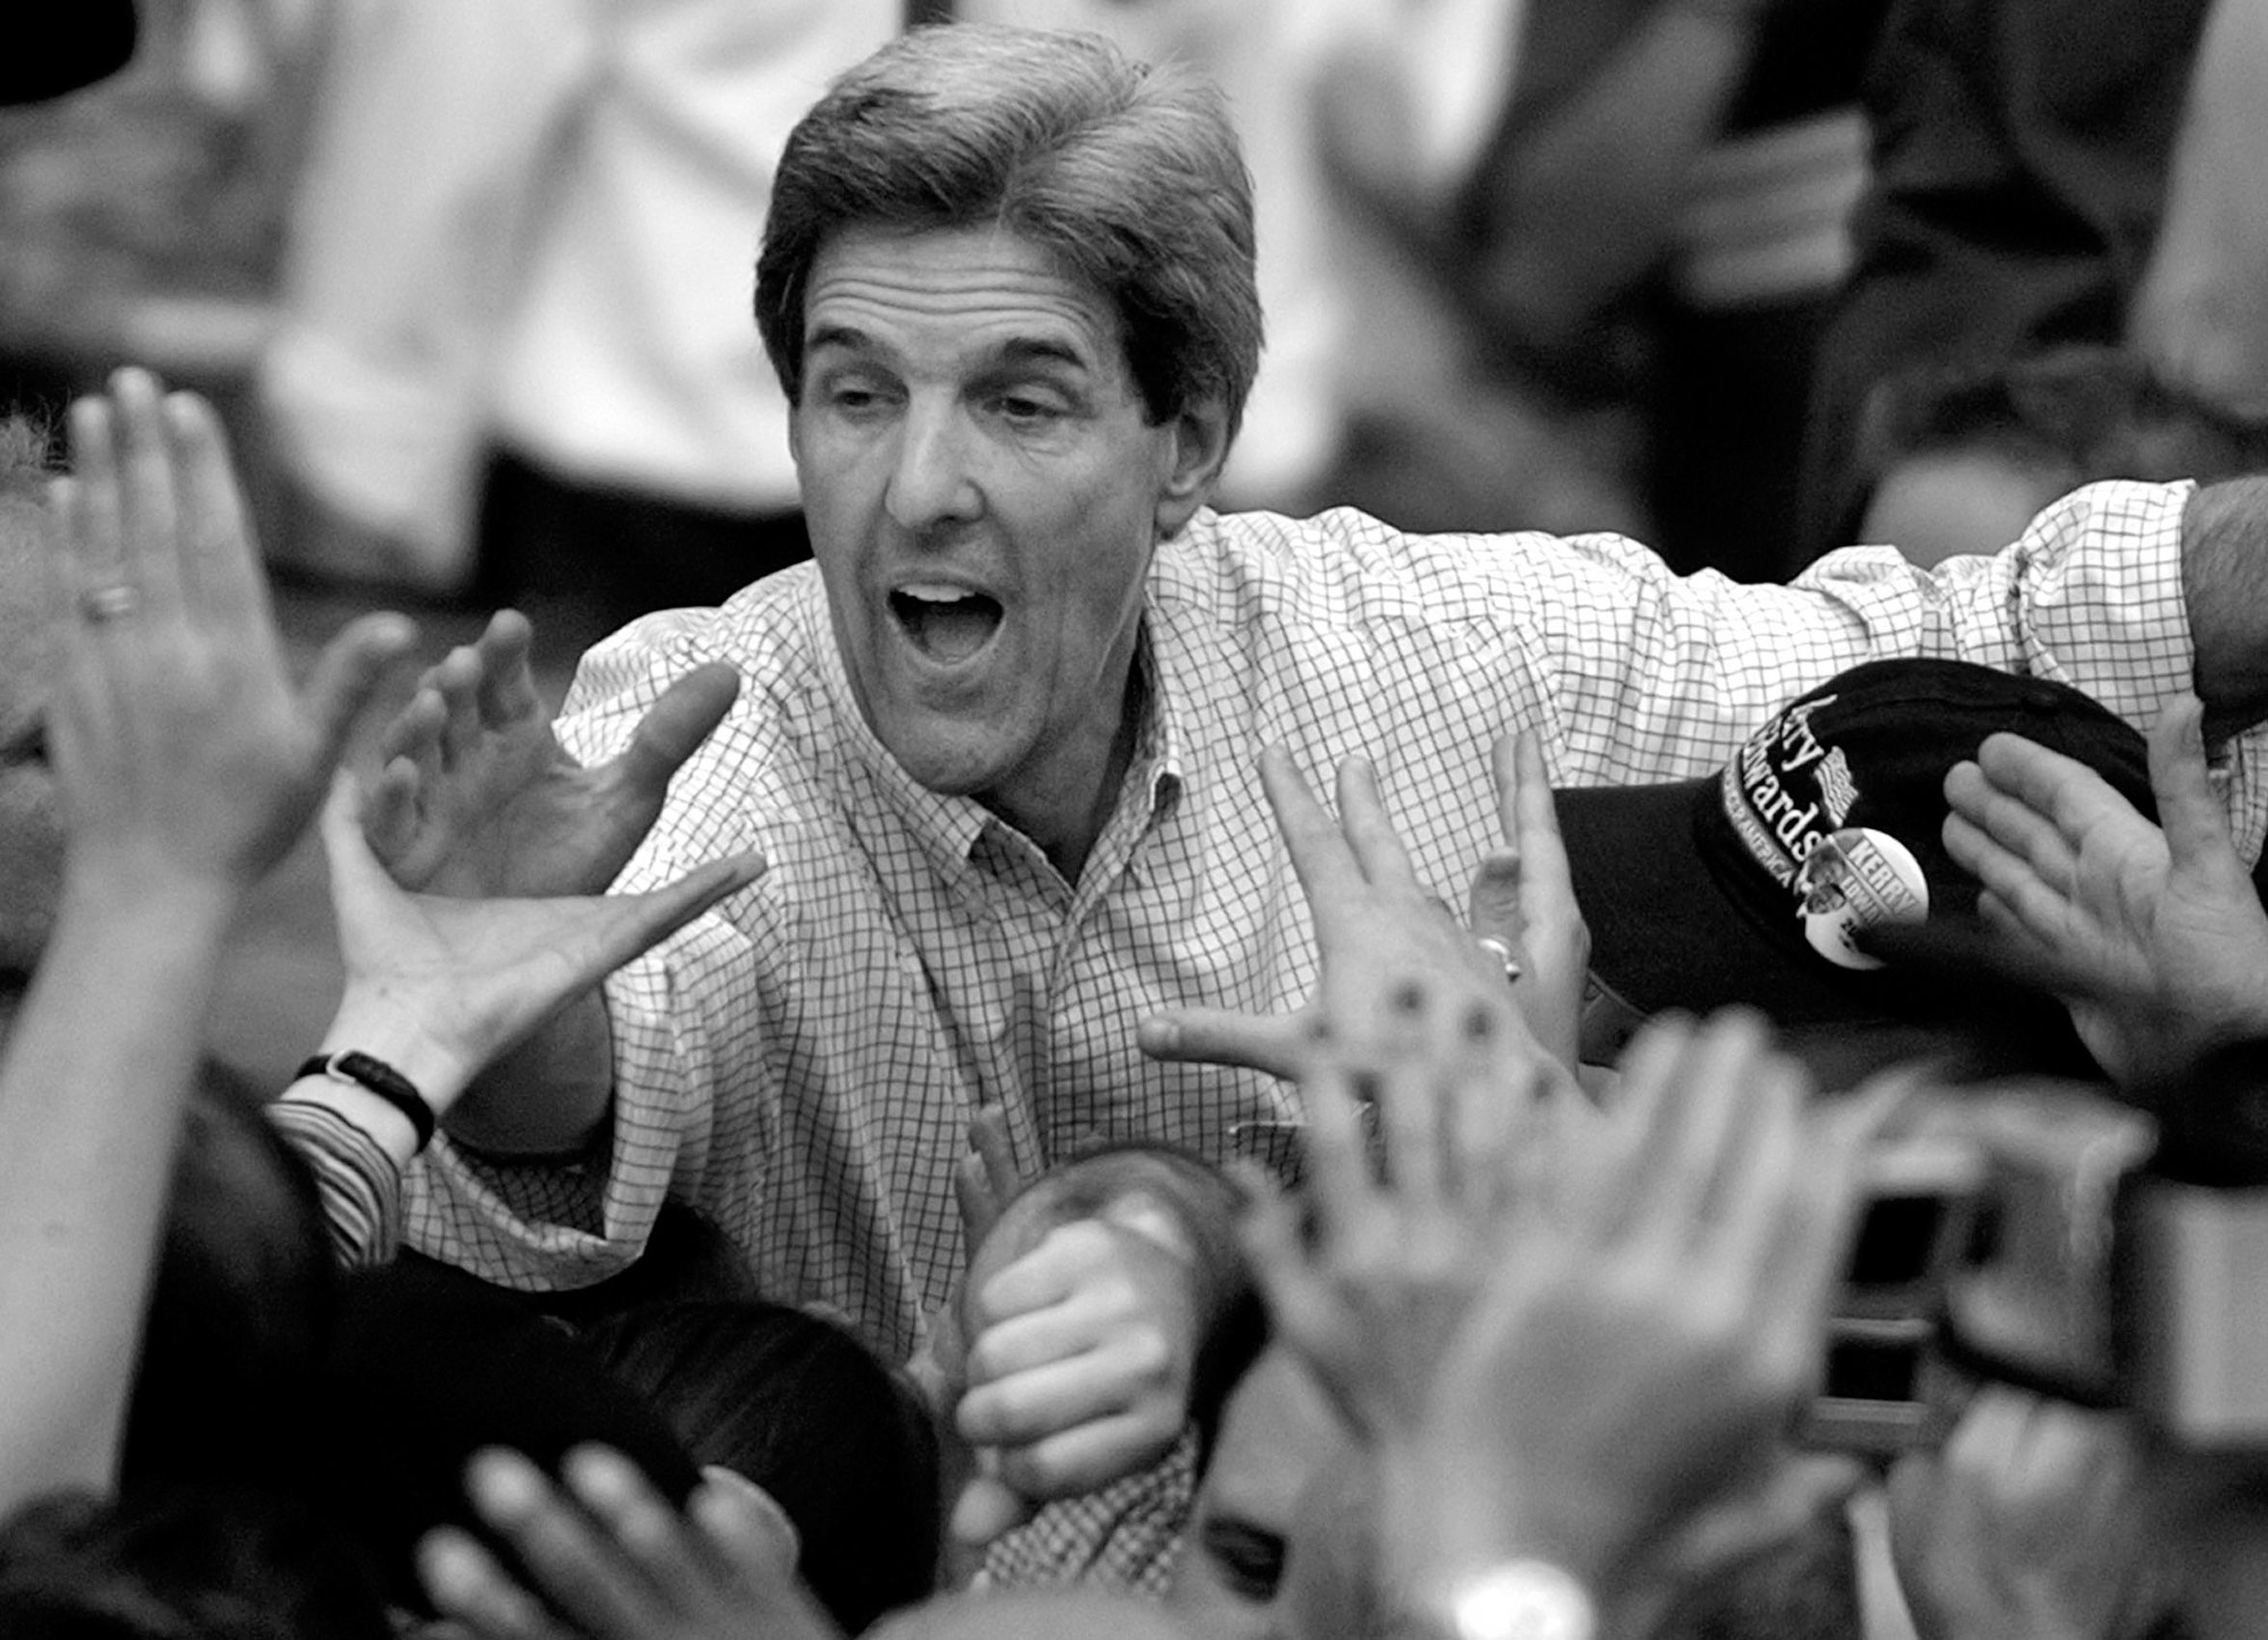 John Kerry Presidential Campaign 2004